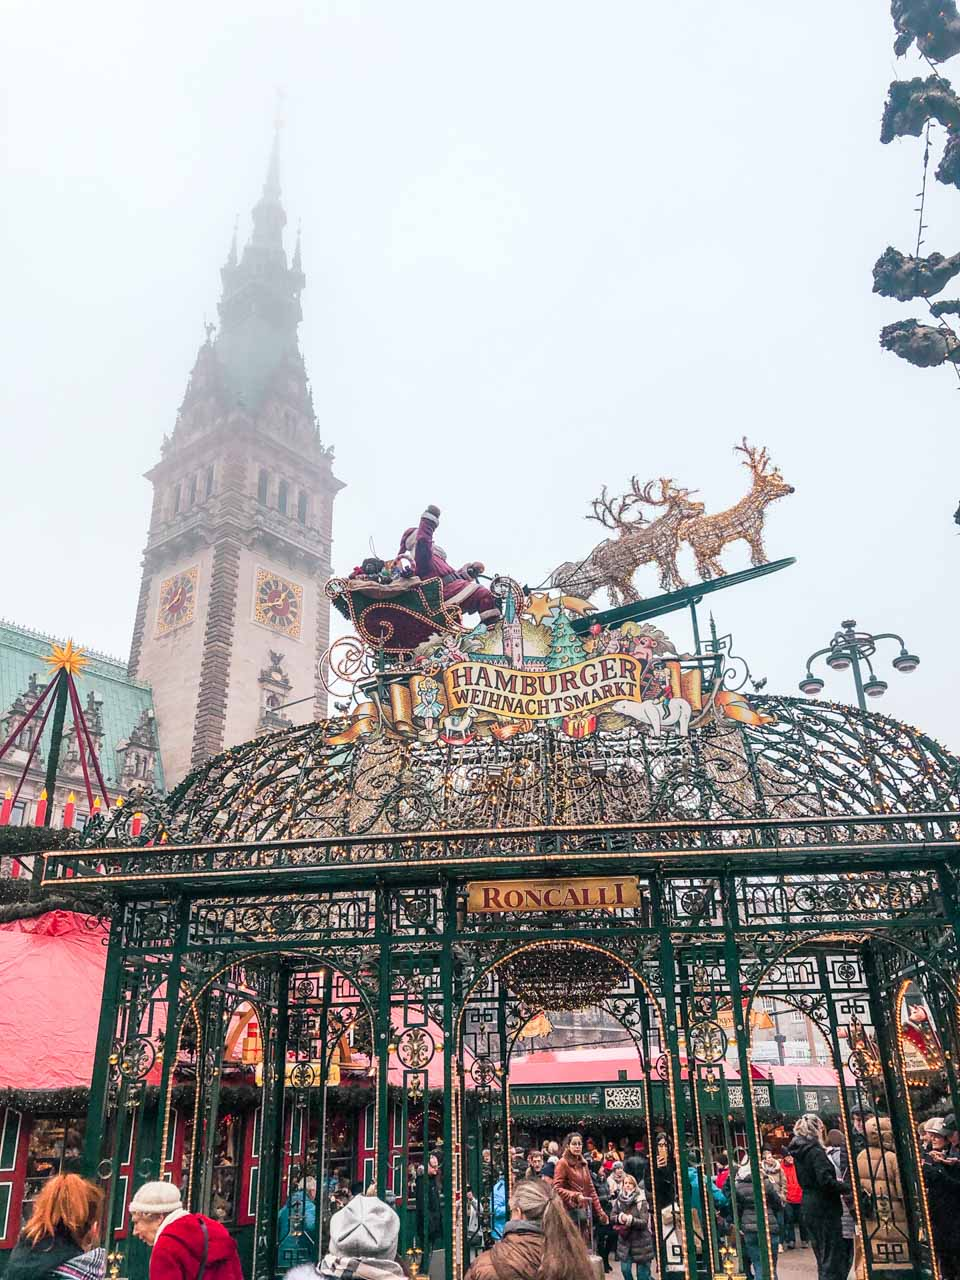 Festive decorations at the City Hall Christmas Market in Hamburg